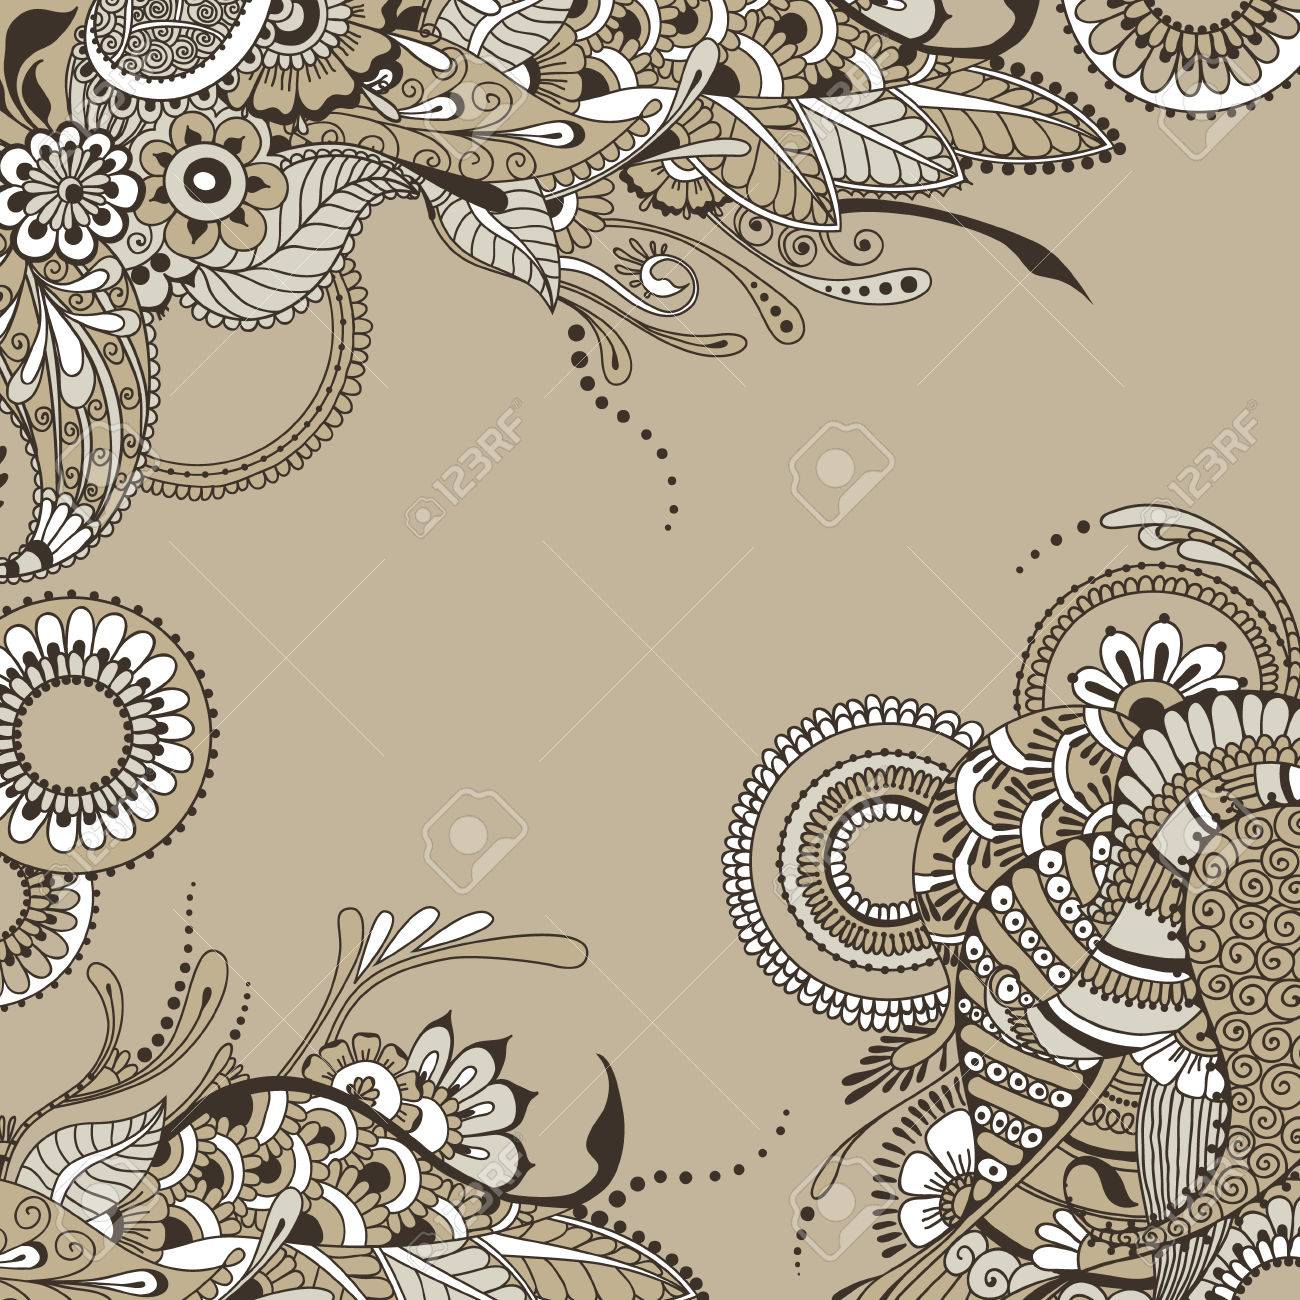 Ornate vector card template in indian mehndi style hand drawn ornate vector card template in indian mehndi style hand drawn abstract background for invitation stopboris Images